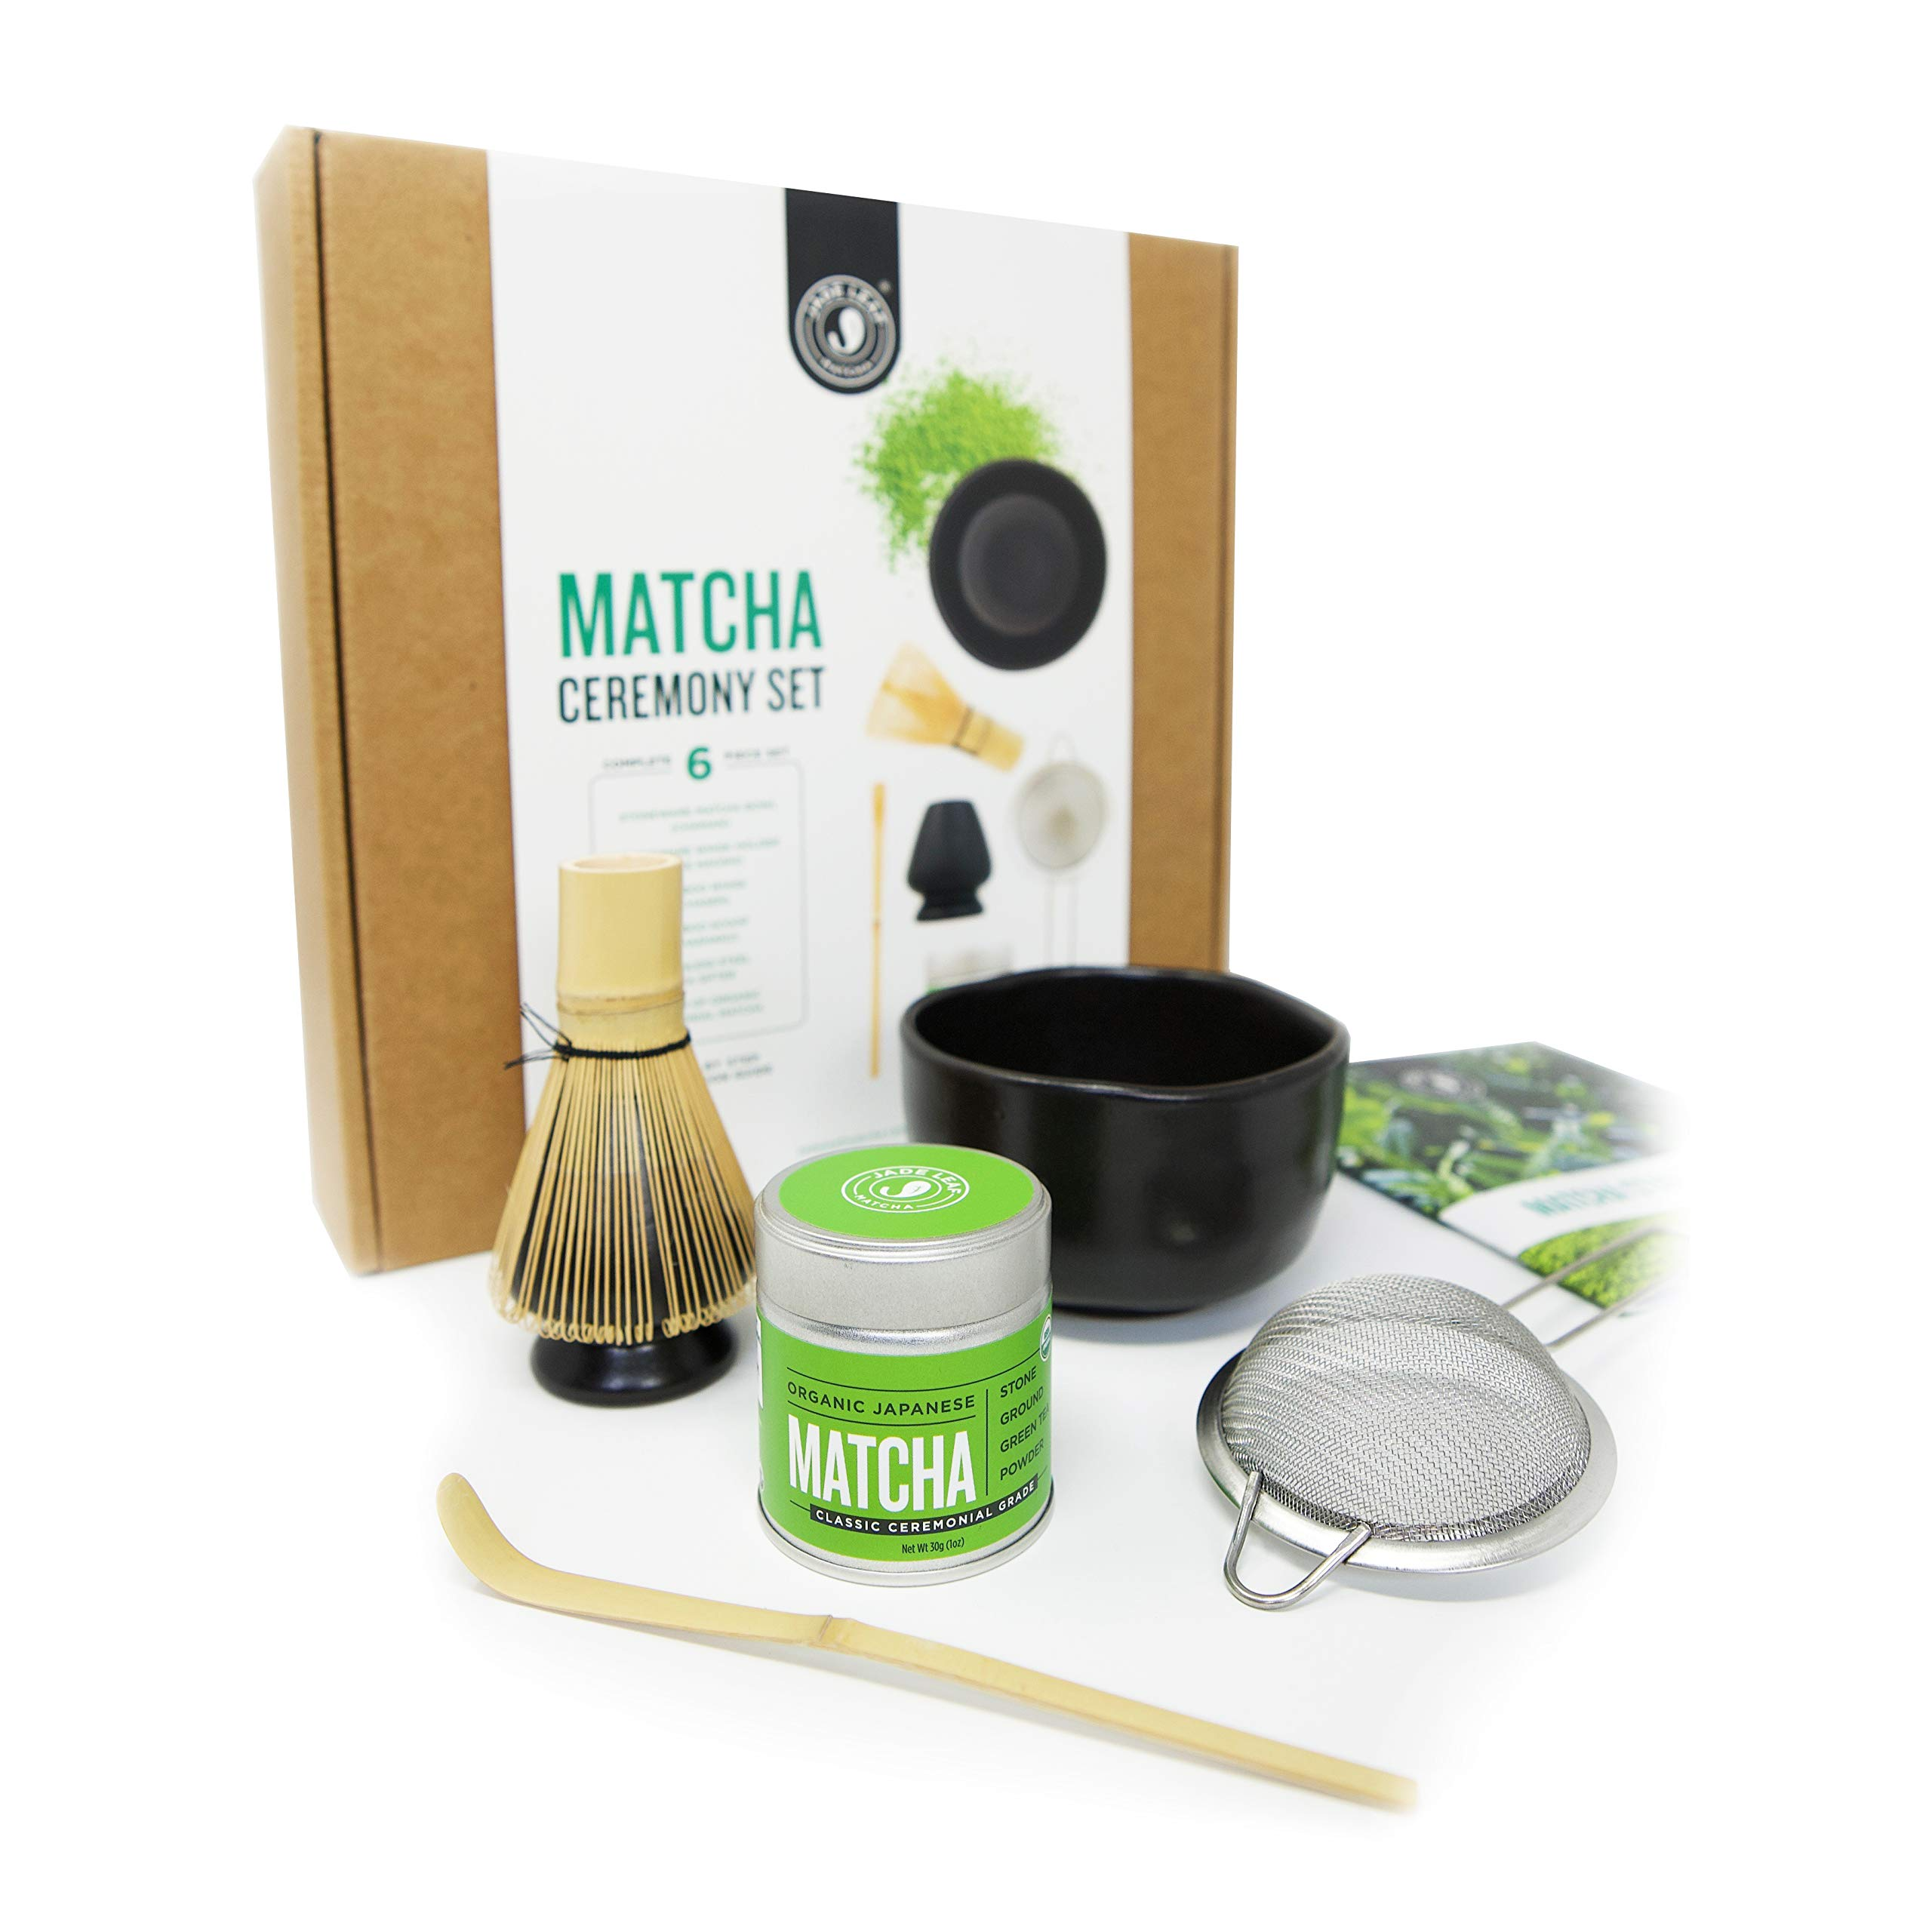 Jade Leaf - Complete Matcha Ceremony Gift Set - Ceremonial Grade Organic Matcha Green Tea Powder Tin, Bamboo Matcha Whisk and Scoop, Stainless Steel Sifter, Stoneware Bowl & Whisk Holder, Prep Guide by Jade Leaf Matcha